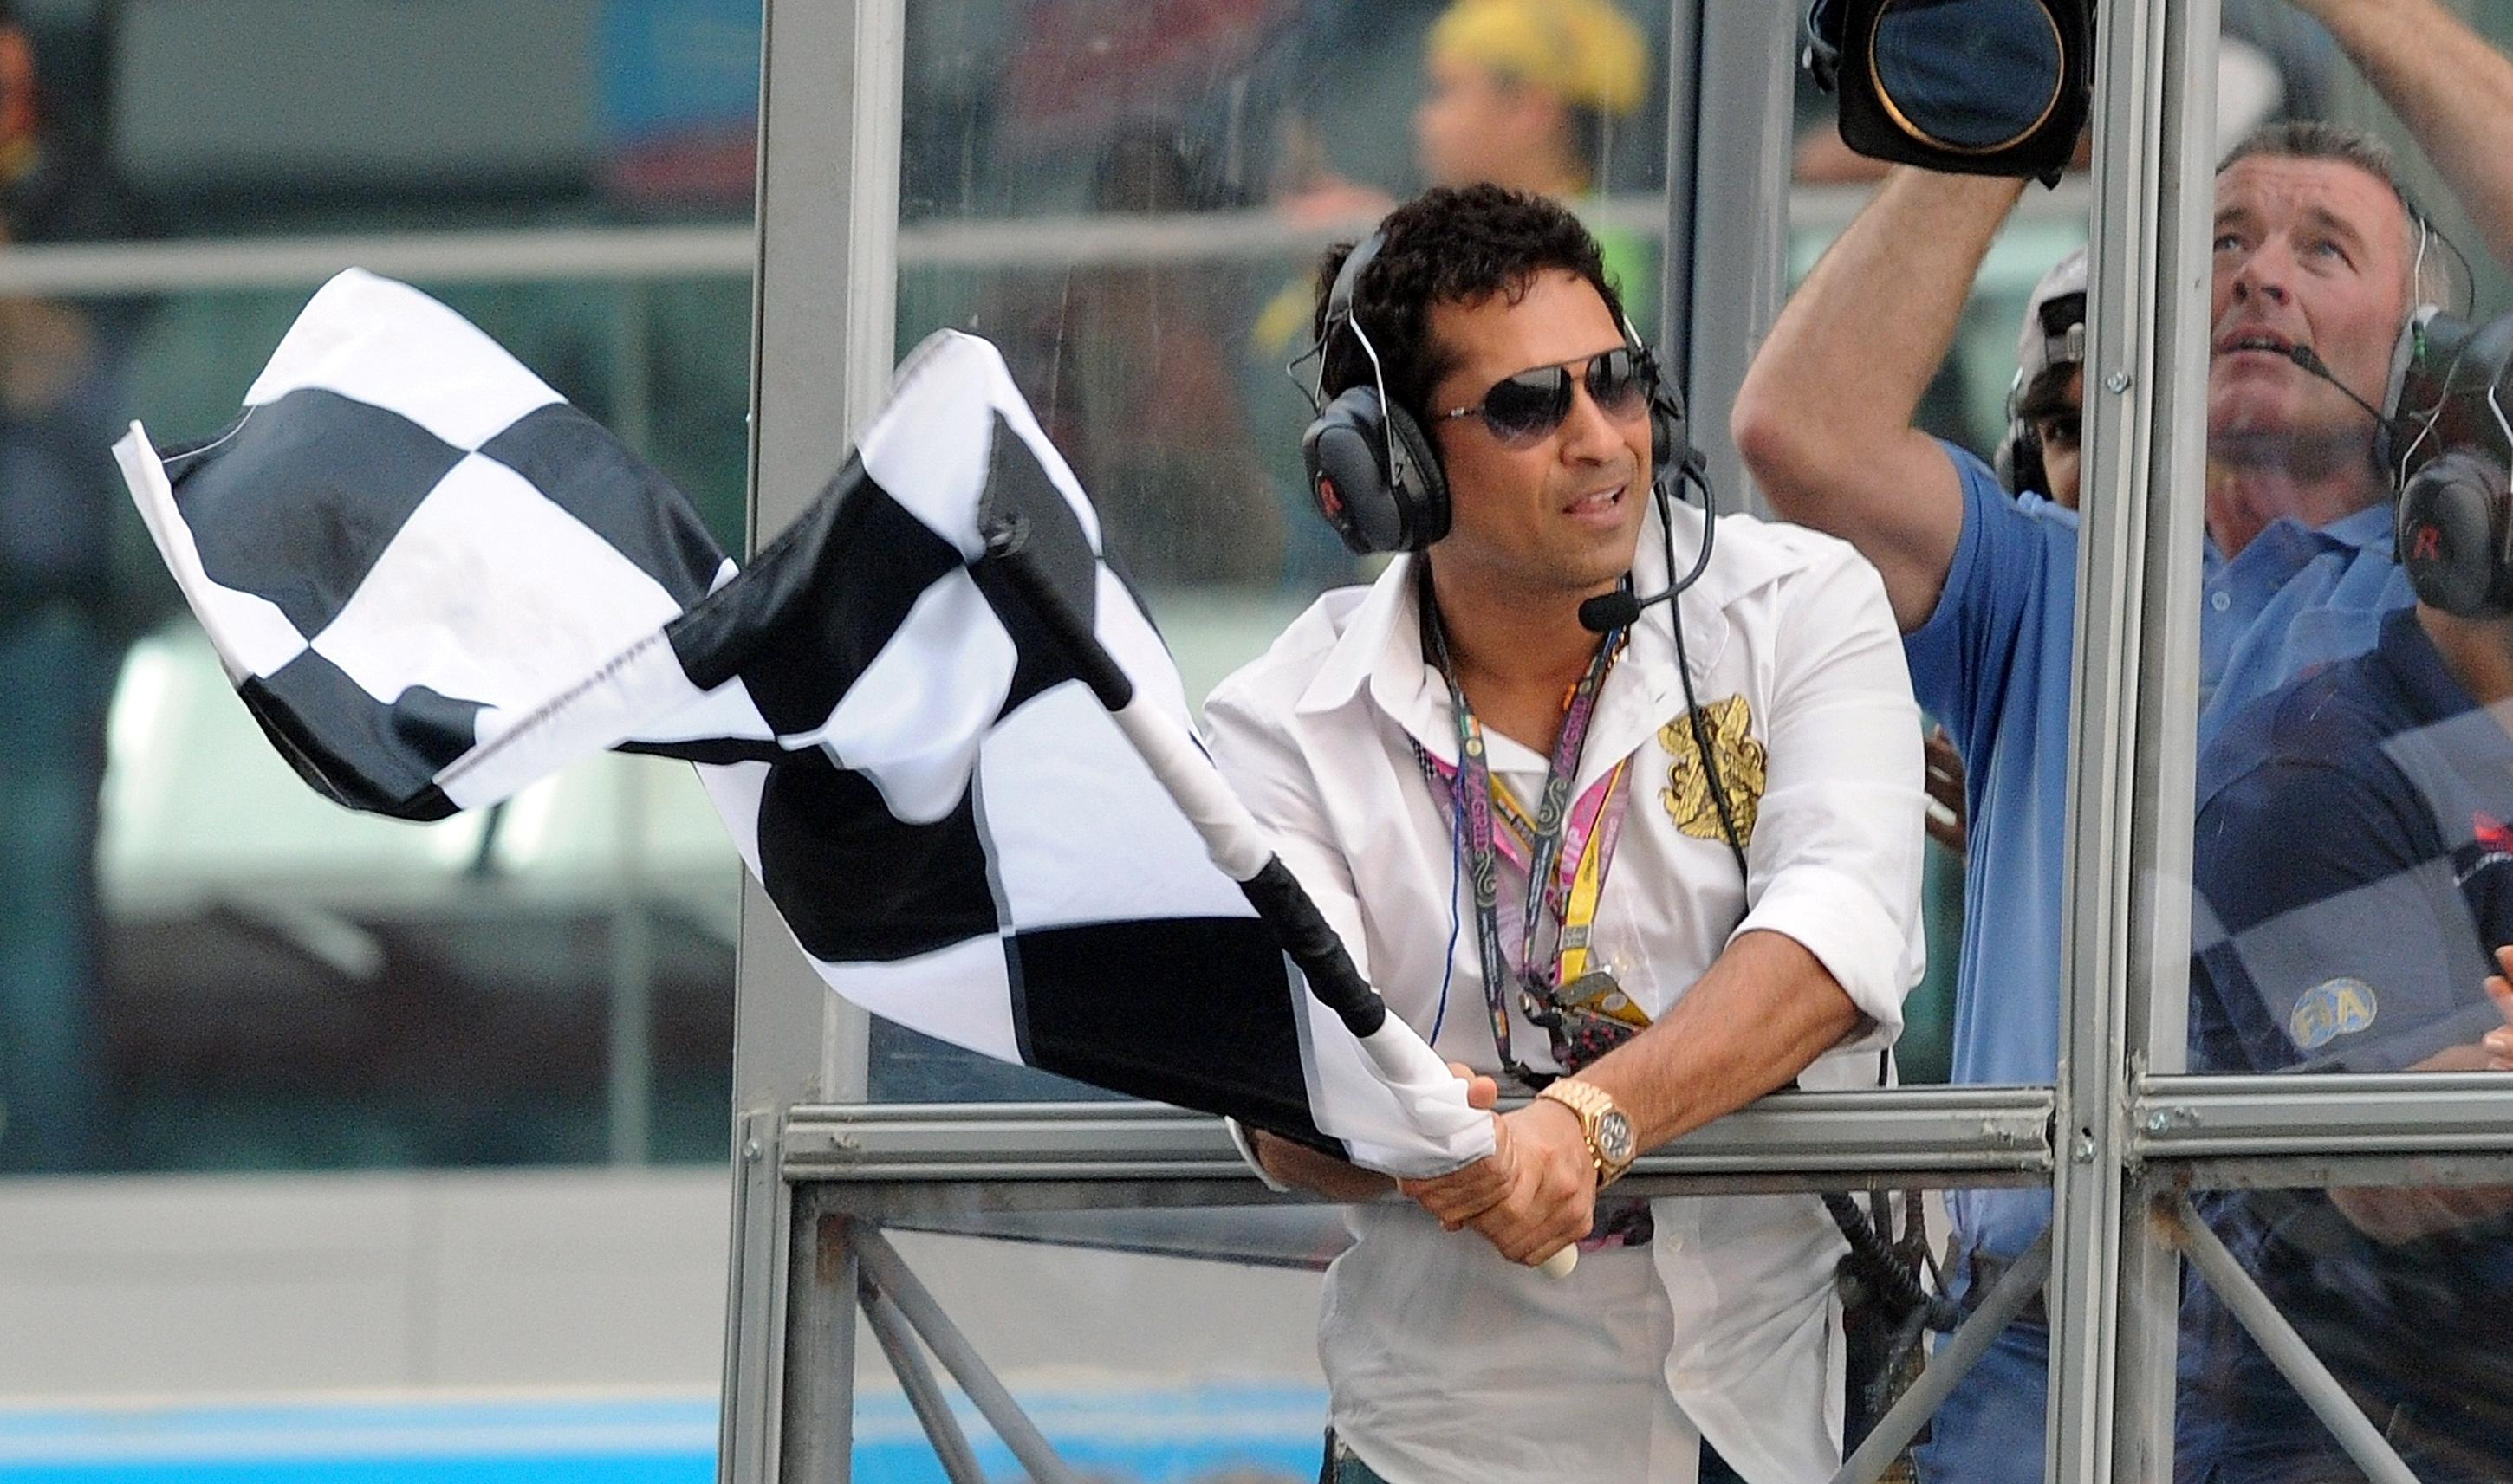 Cricket legendSachin Tendulkar waved the chequered flag at the end of the inaugural Indian Grand Prix in 2011